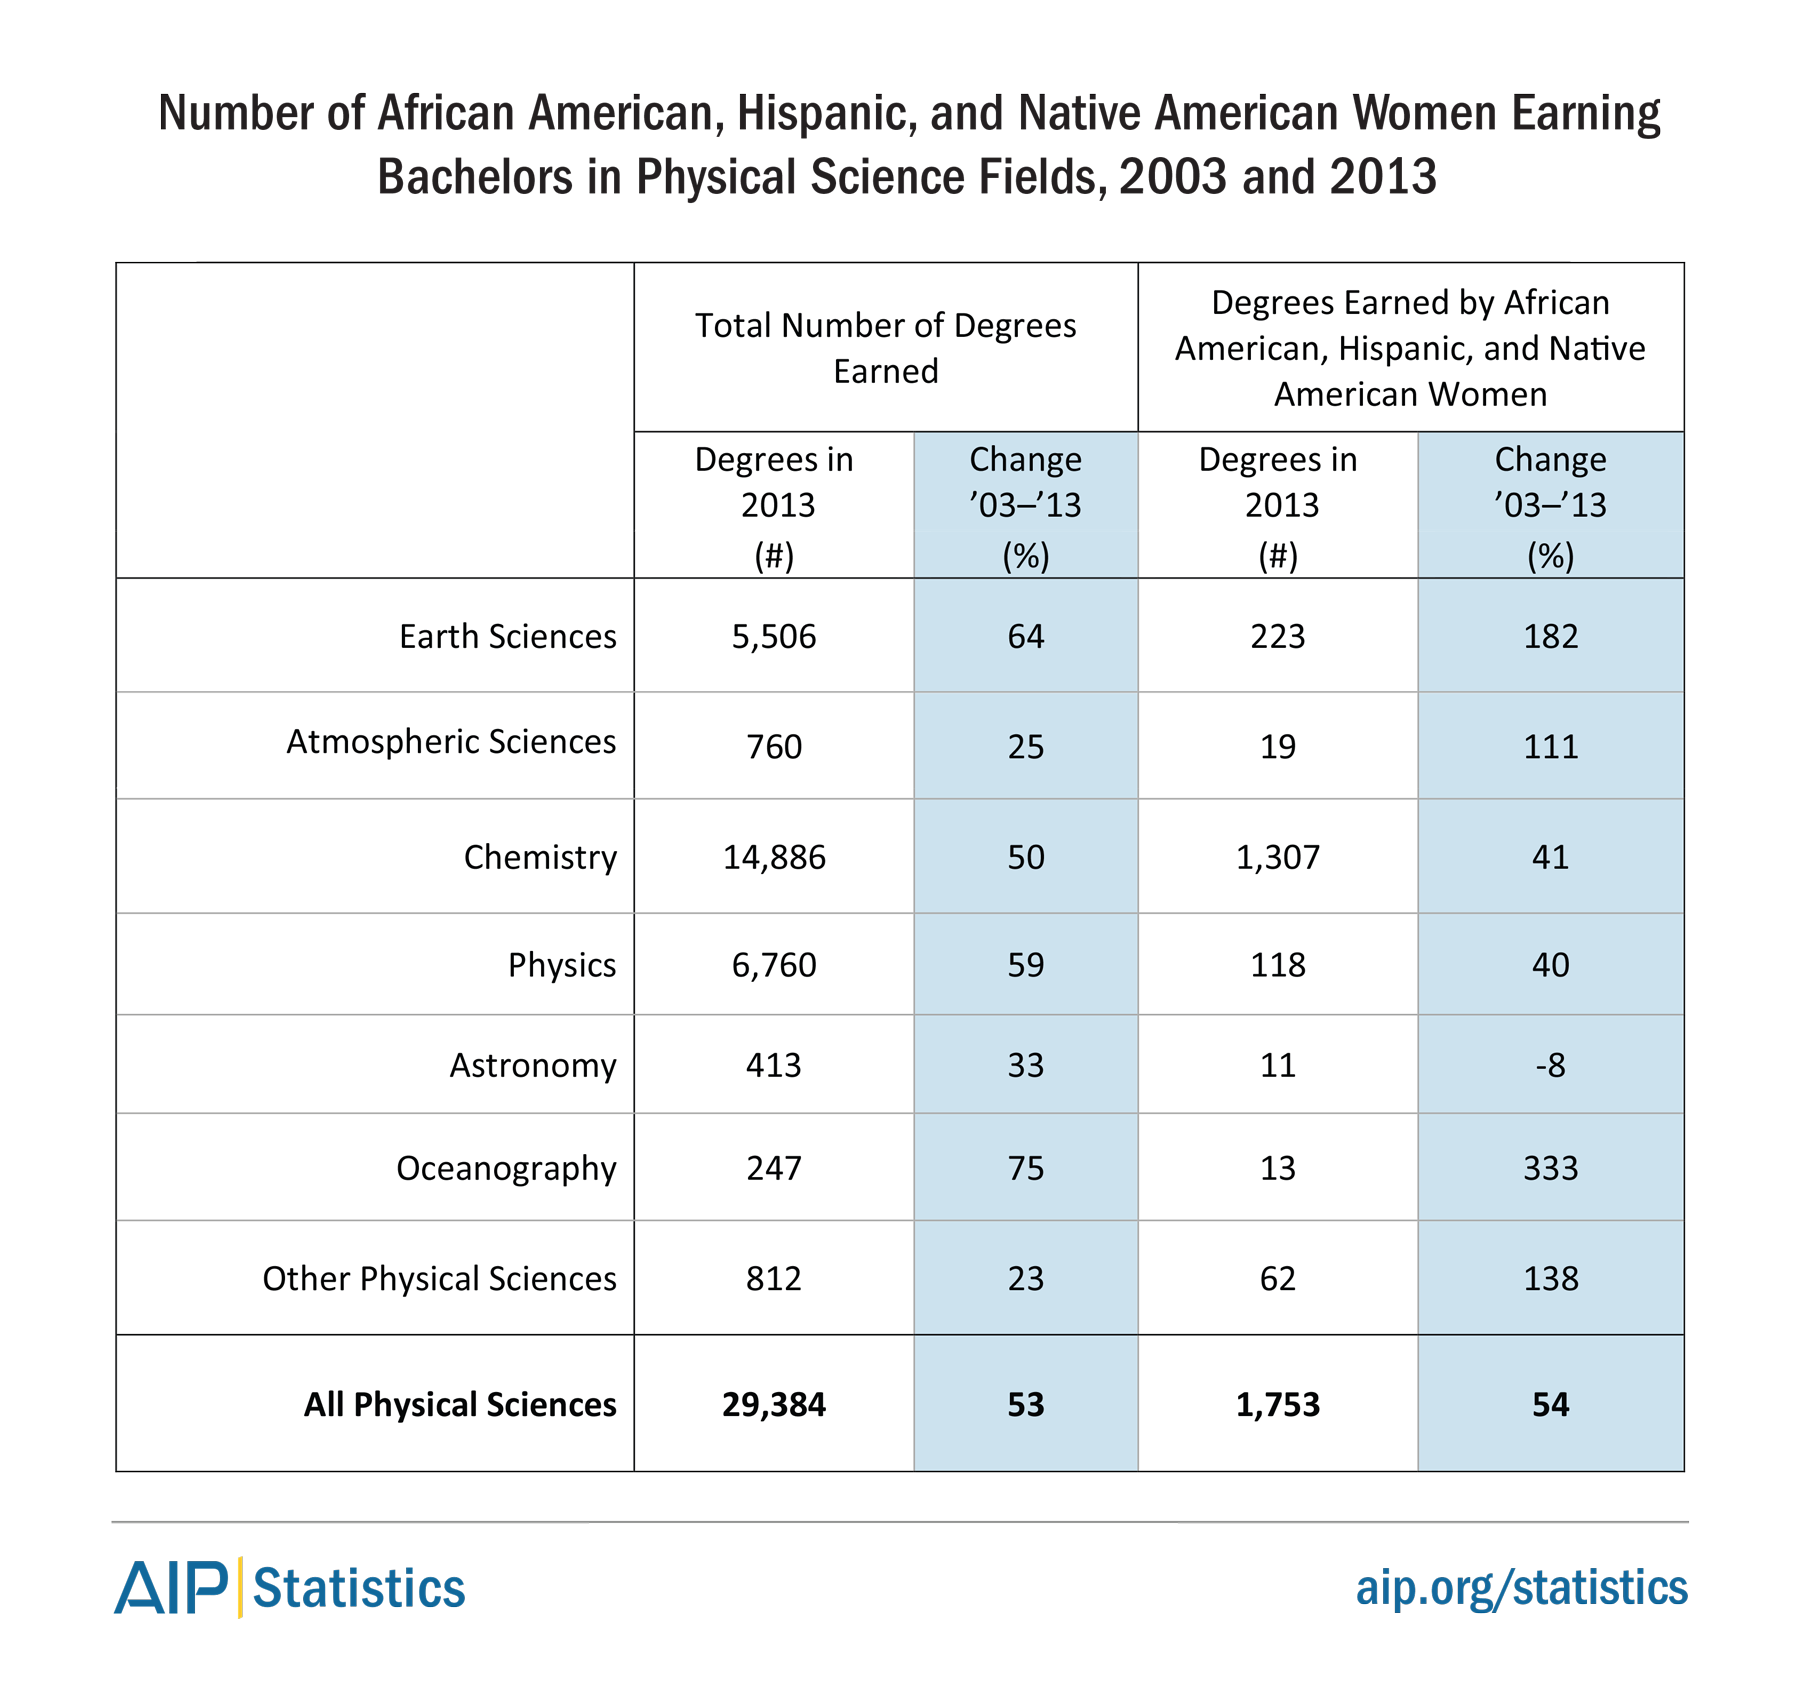 Number of African American, Hispanic, and Native American Women among Bachelors in Physical Science Fields, 2003 and 2013